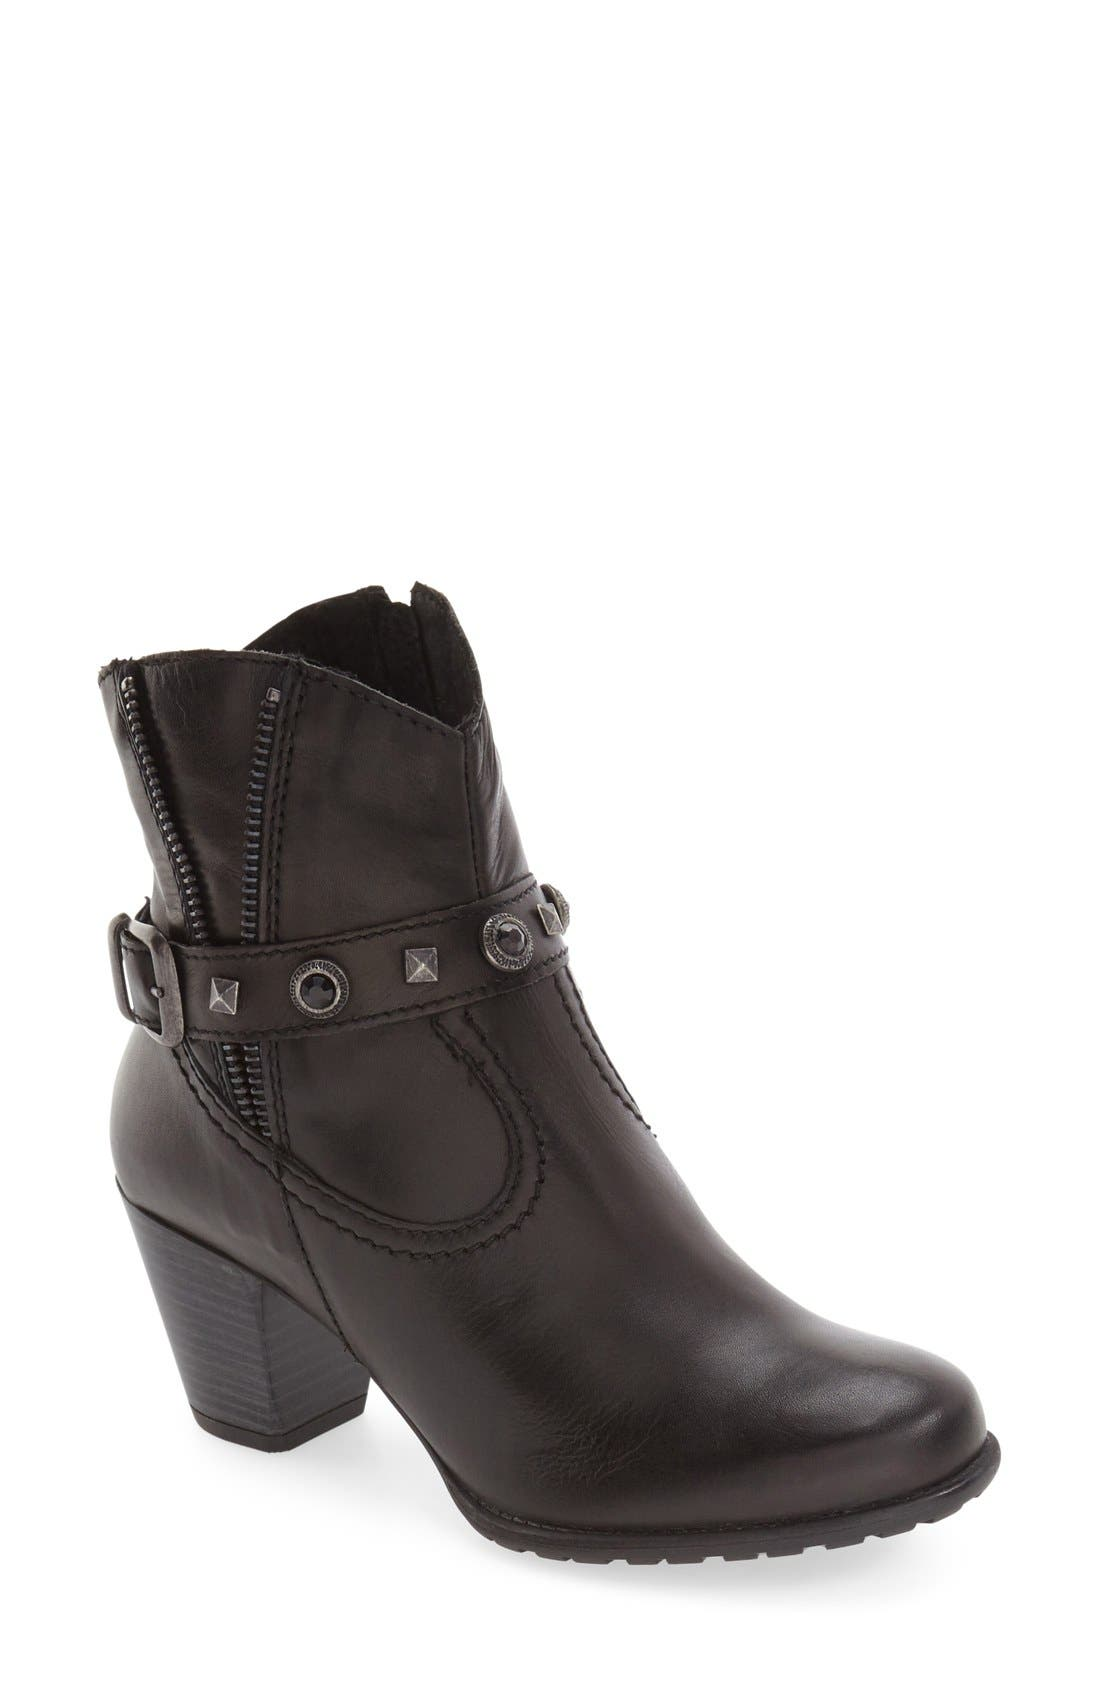 'Ramona' Boot,                         Main,                         color, Black Leather